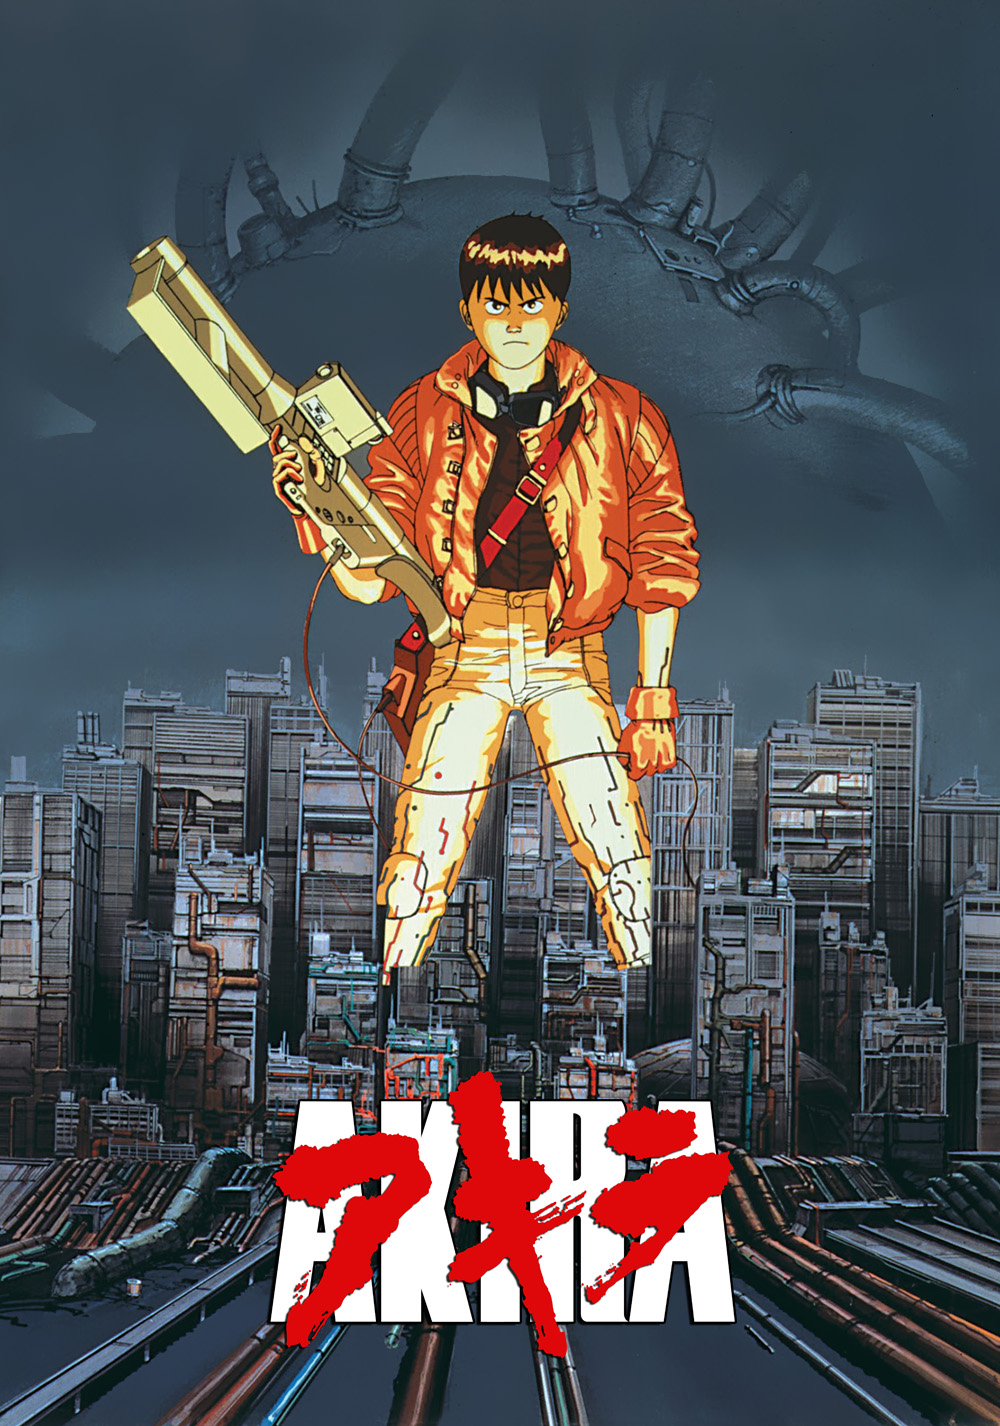 Akira (1988) - Directed by: Katsuhiro OtomoStarring: Mitsuo Iwata, Nozomu Saski, Takeshi KusaoRated: R for Graphic Violence and Brief NudityRunning Time: 2 h 4 mTMM Score: 4.5 stars out of 5STRENGTHS: Story, AnimationWEAKNESSES: Compressed and Dense Story